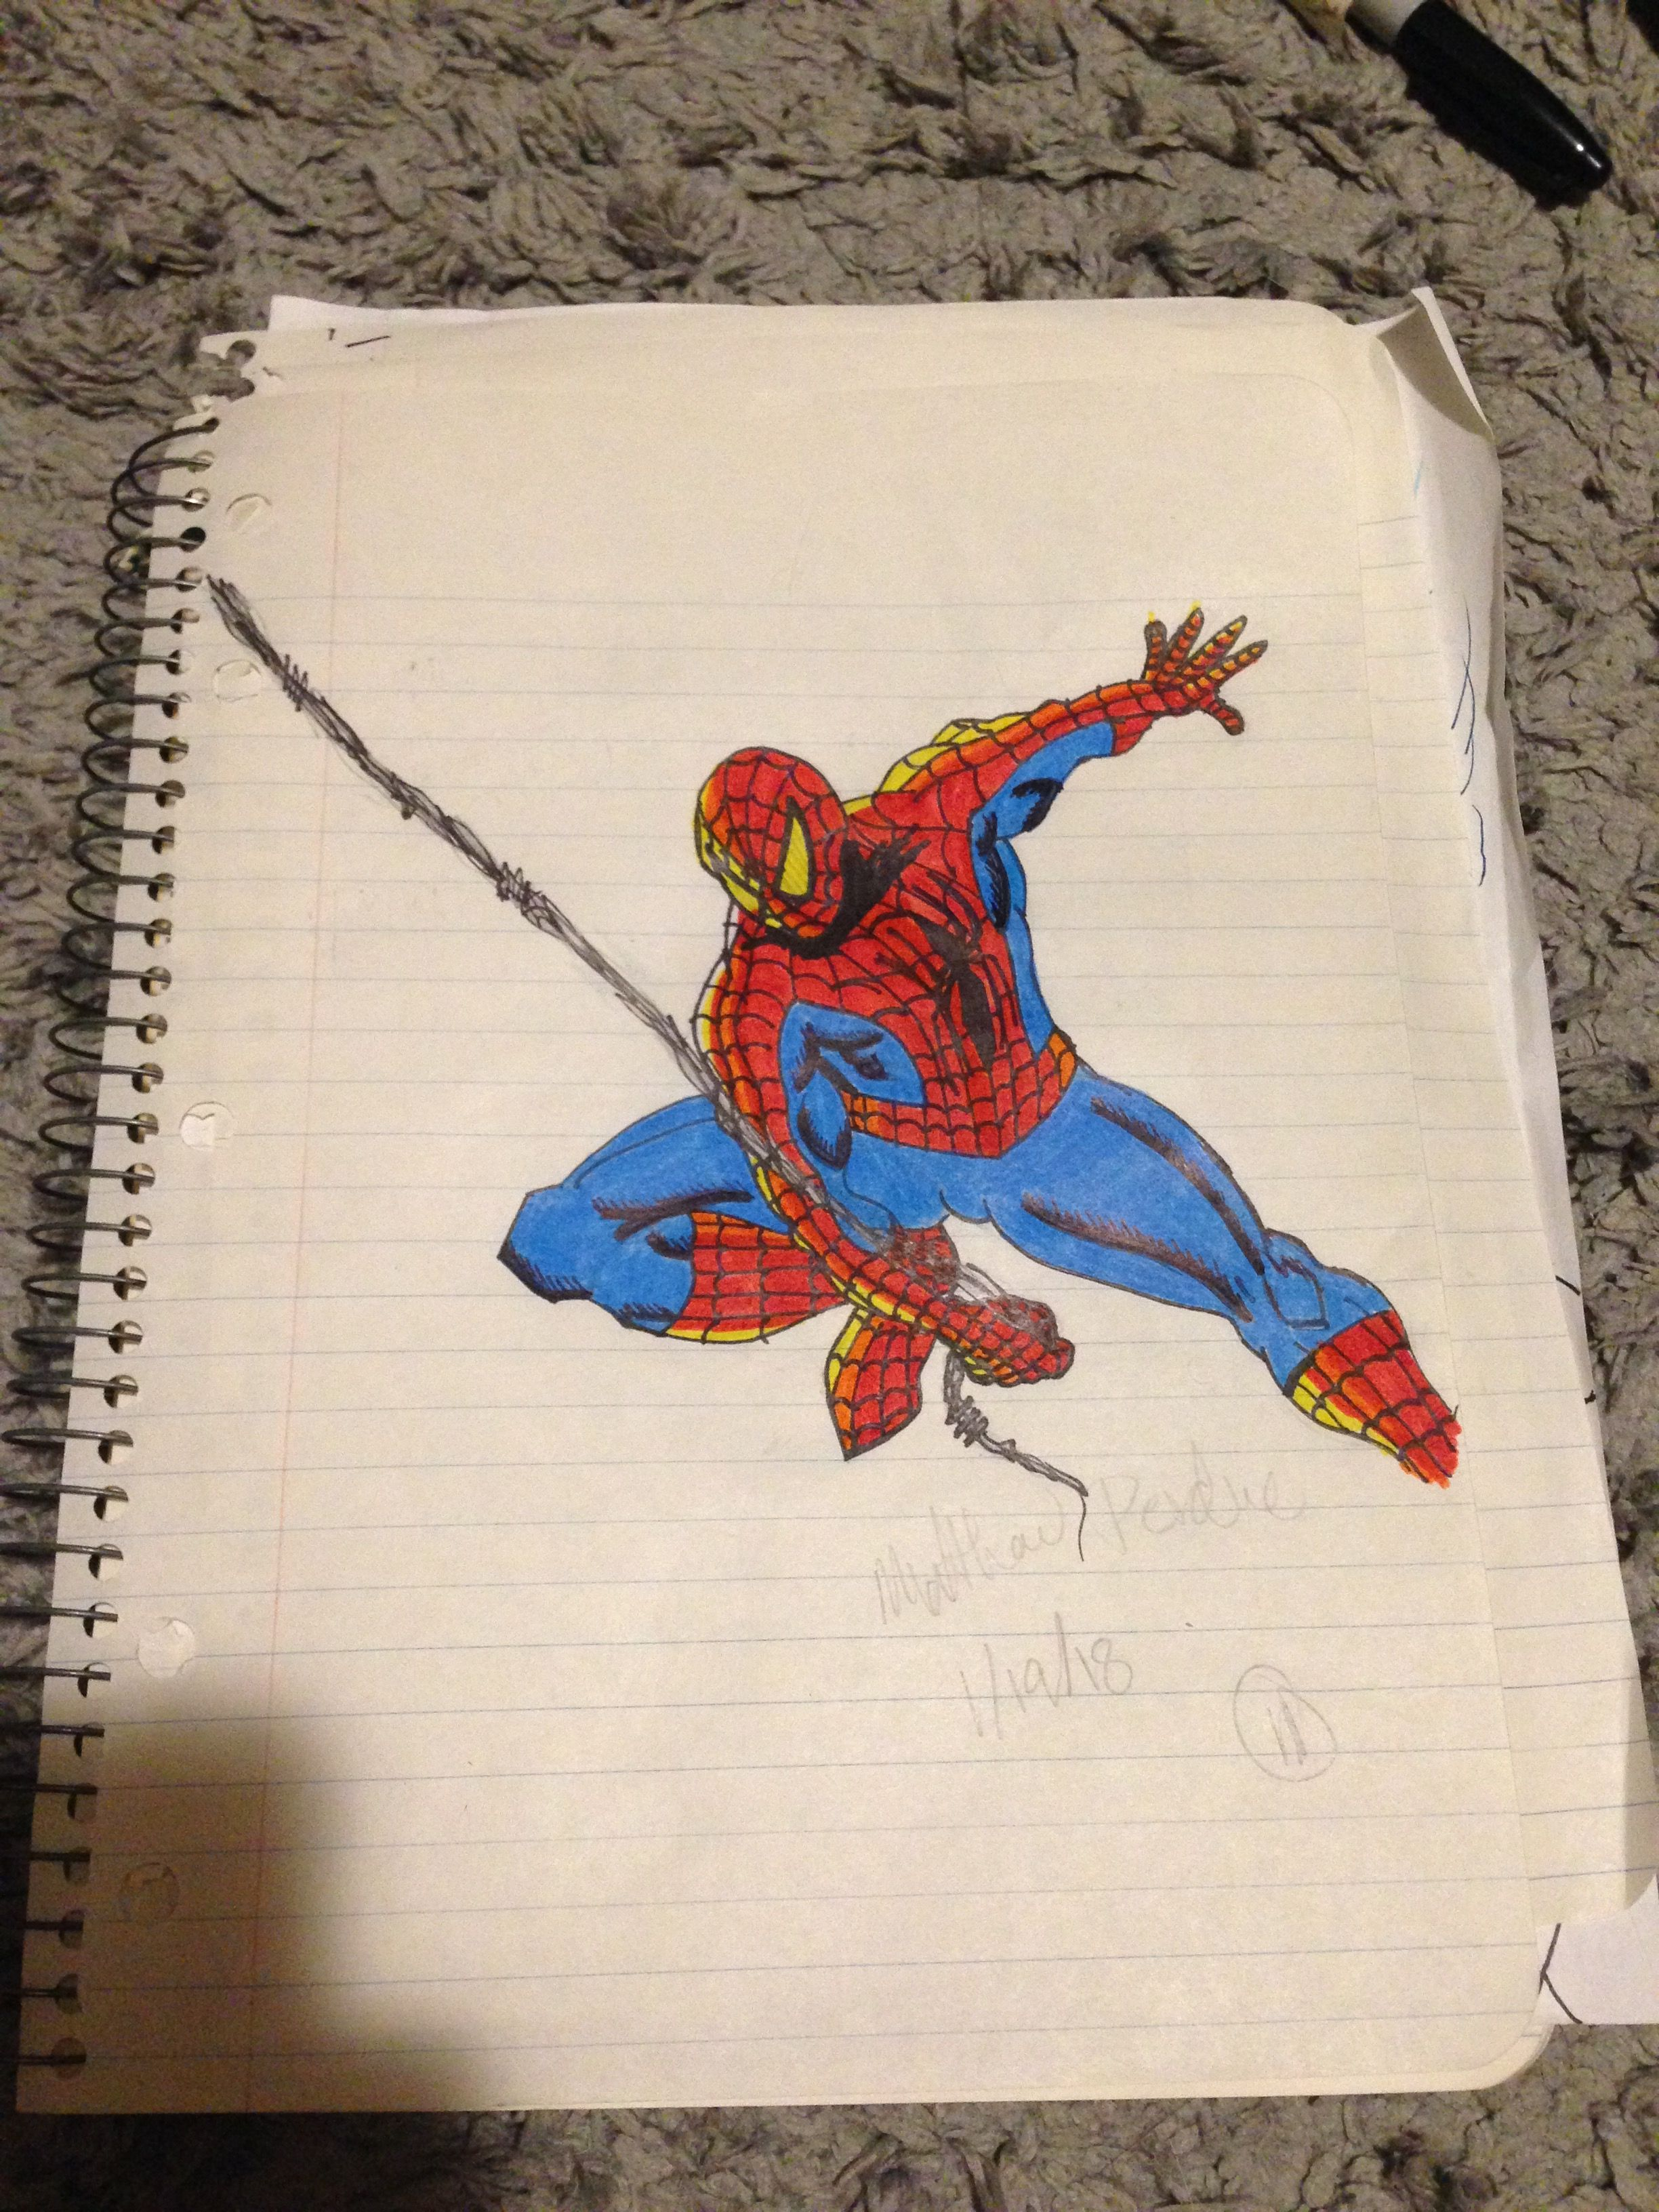 One of my early spider man drawings when i didnt know how muscles were supposed to look 1 19 18